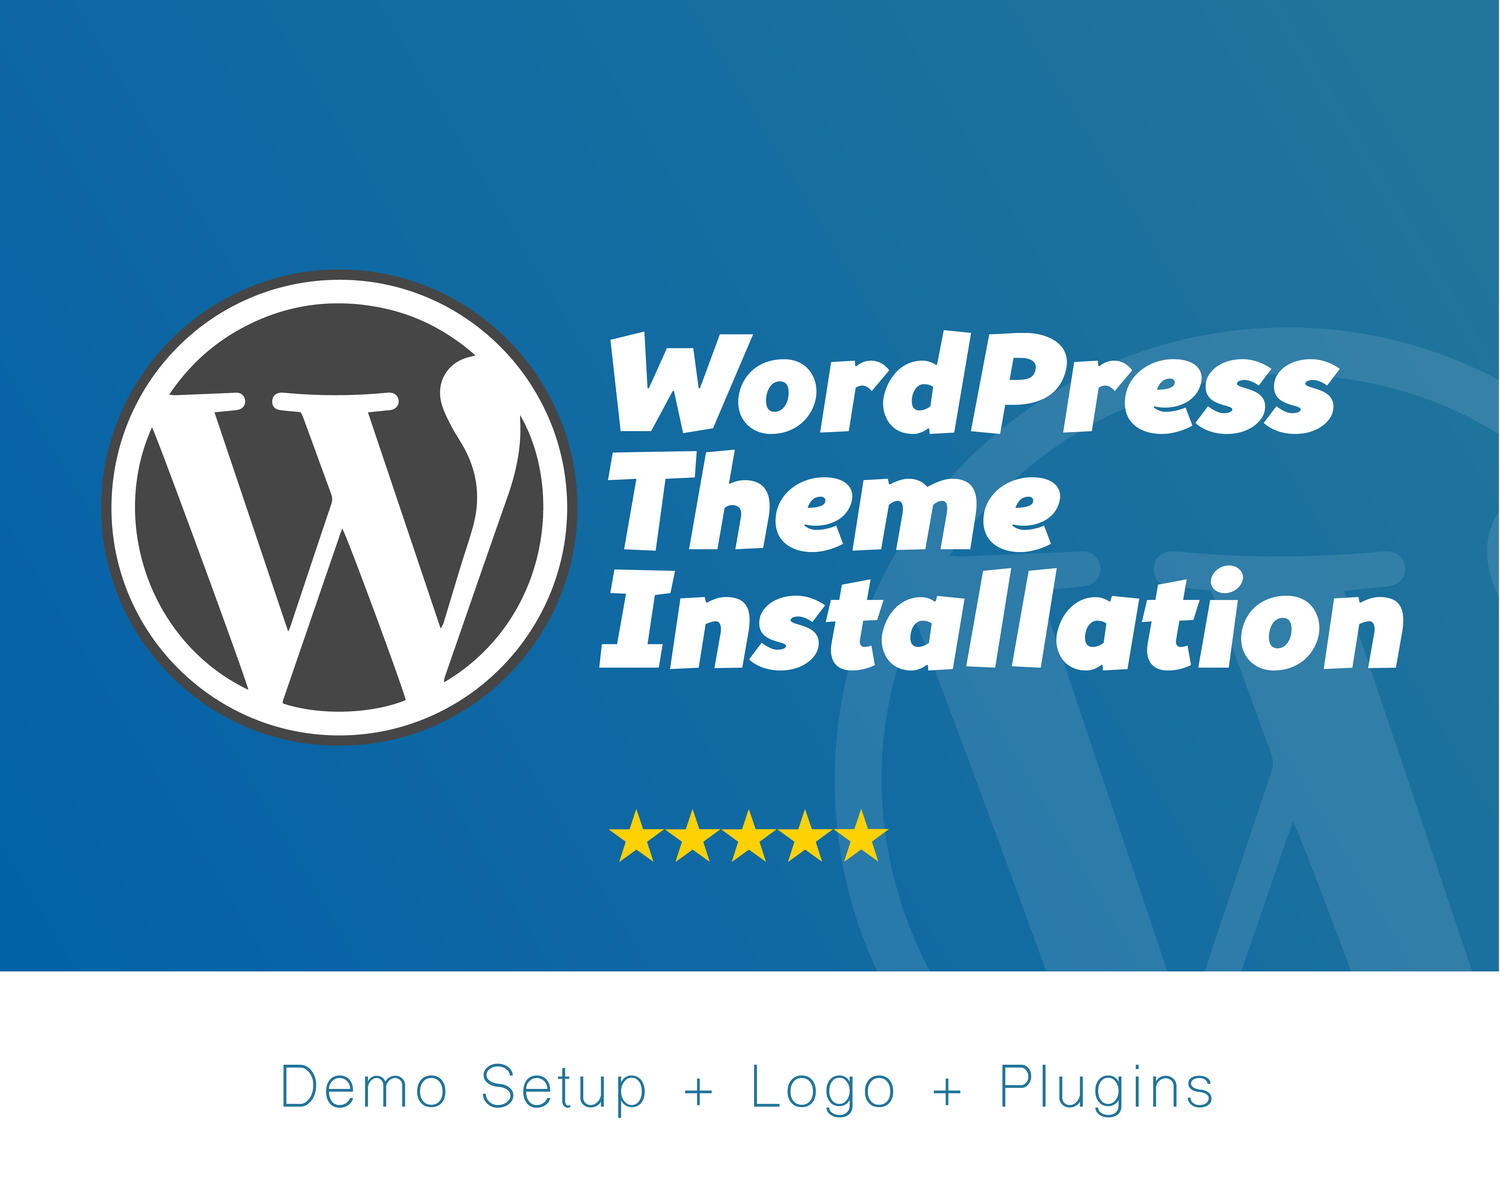 Install Wordpress, Theme, Plugins, And Secure It